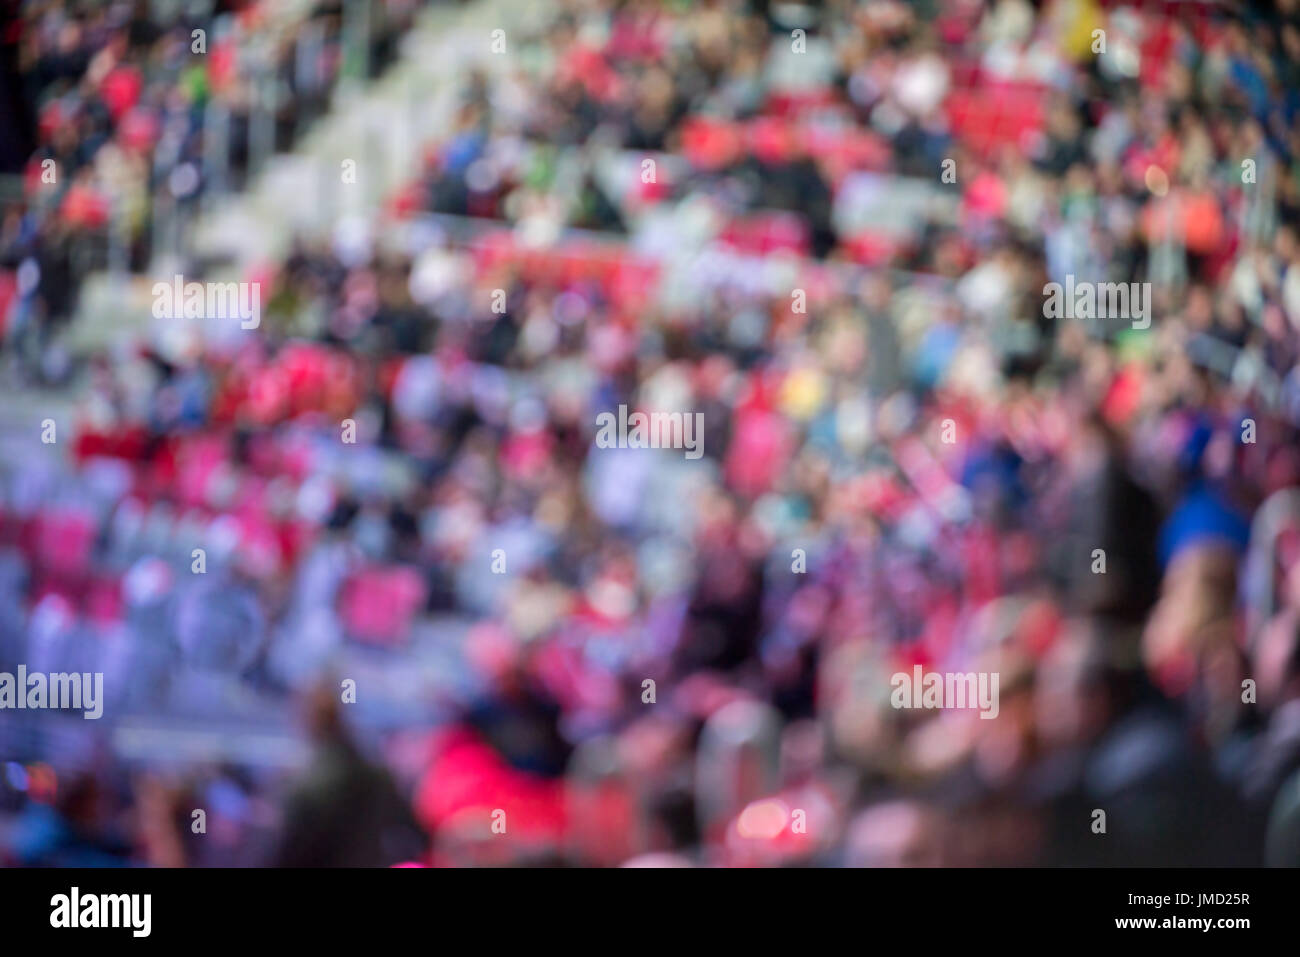 Blurred crowd of spectators on a stadium tribune - Stock Image